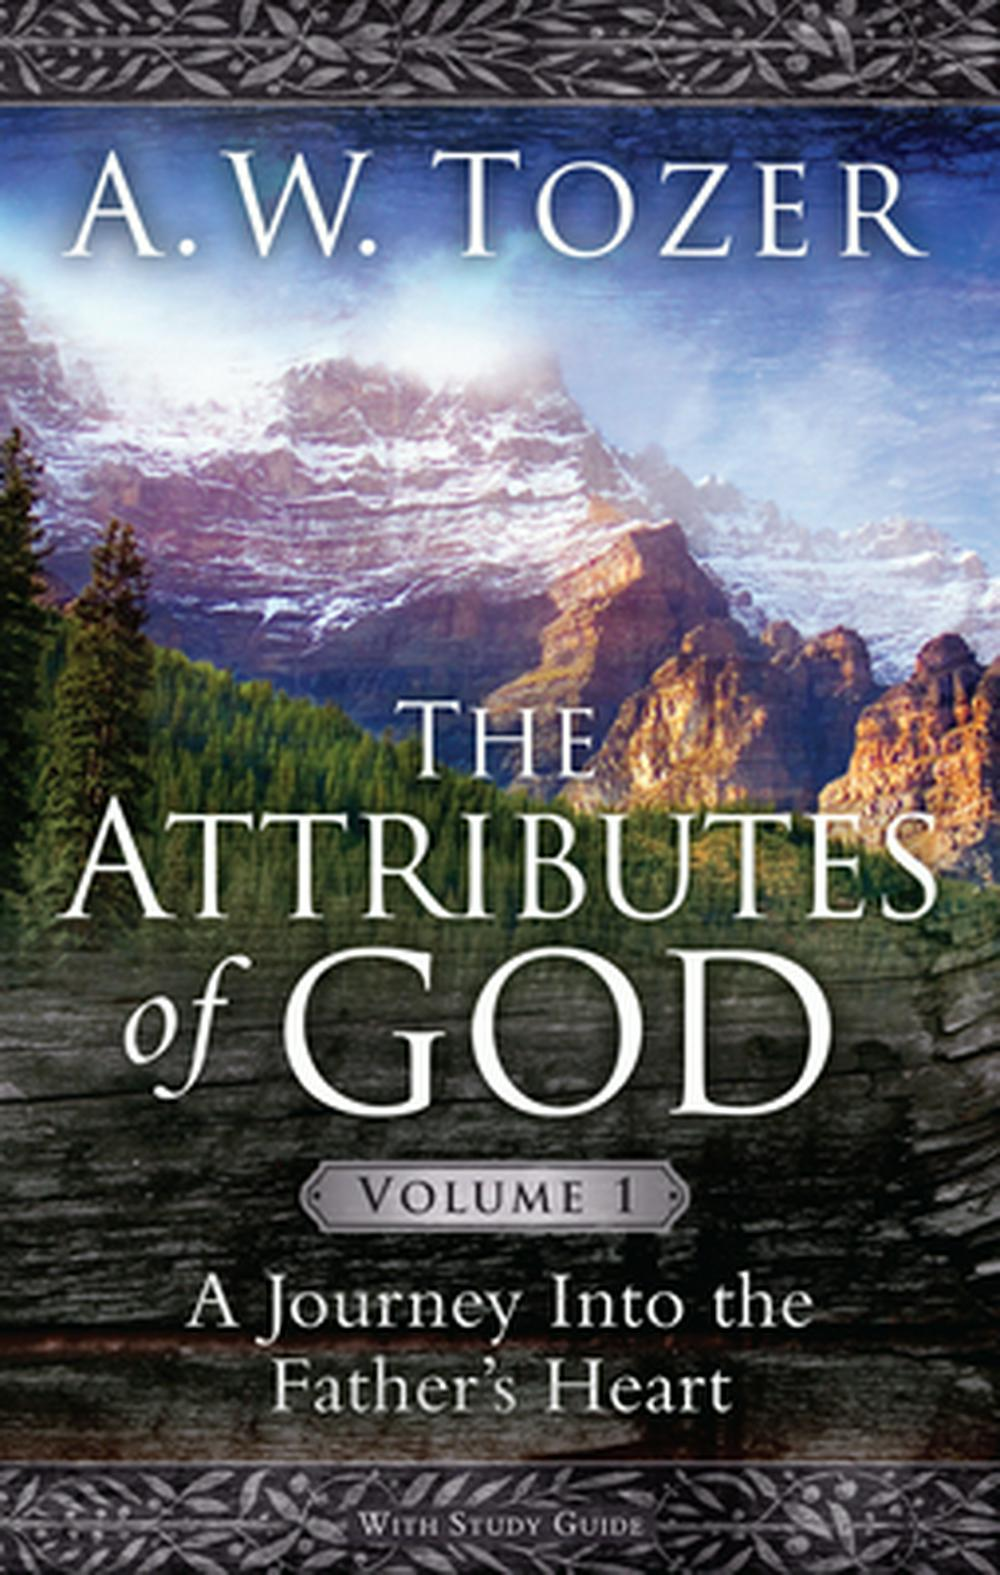 The Attributes of God: A Journey Into the Father's Heart, with Study Guide by A W Tozer, ISBN: 9781600661297